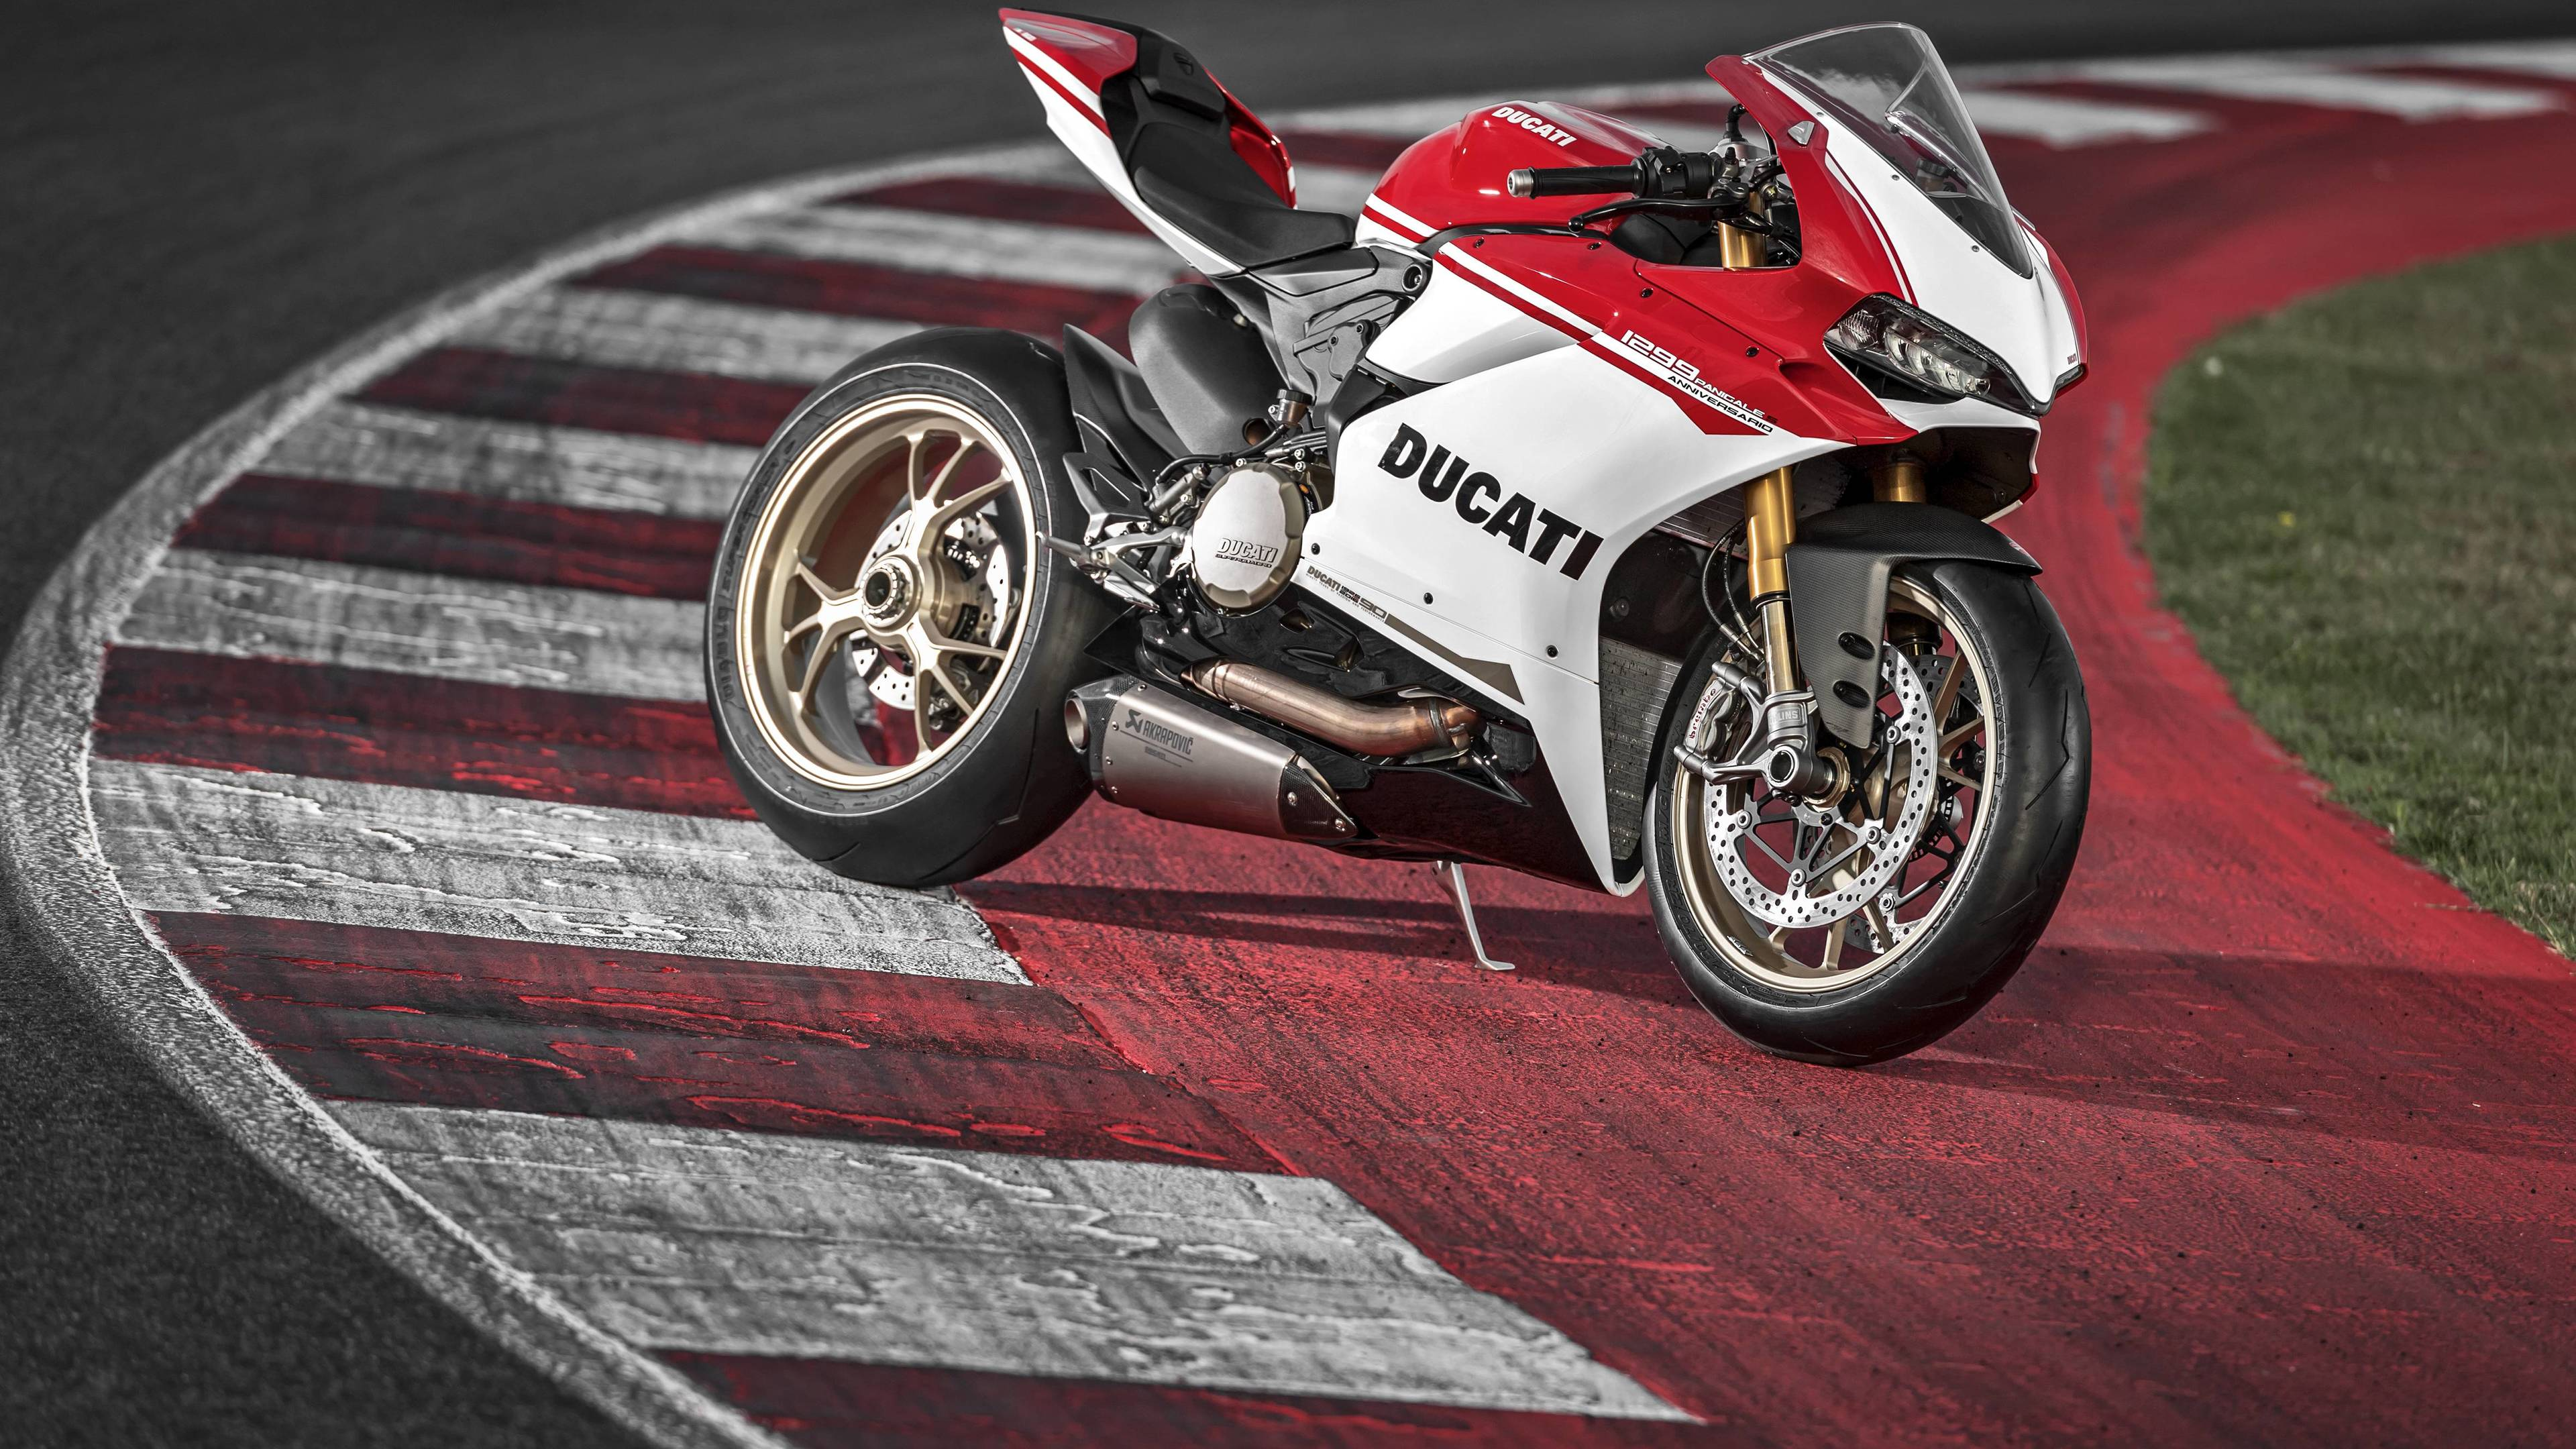 ducati 1299 panigale s 2016 4k 1536316208 - Ducati 1299 Panigale S 2016 4k - ducati wallpapers, ducati panigale wallpapers, bikes wallpapers